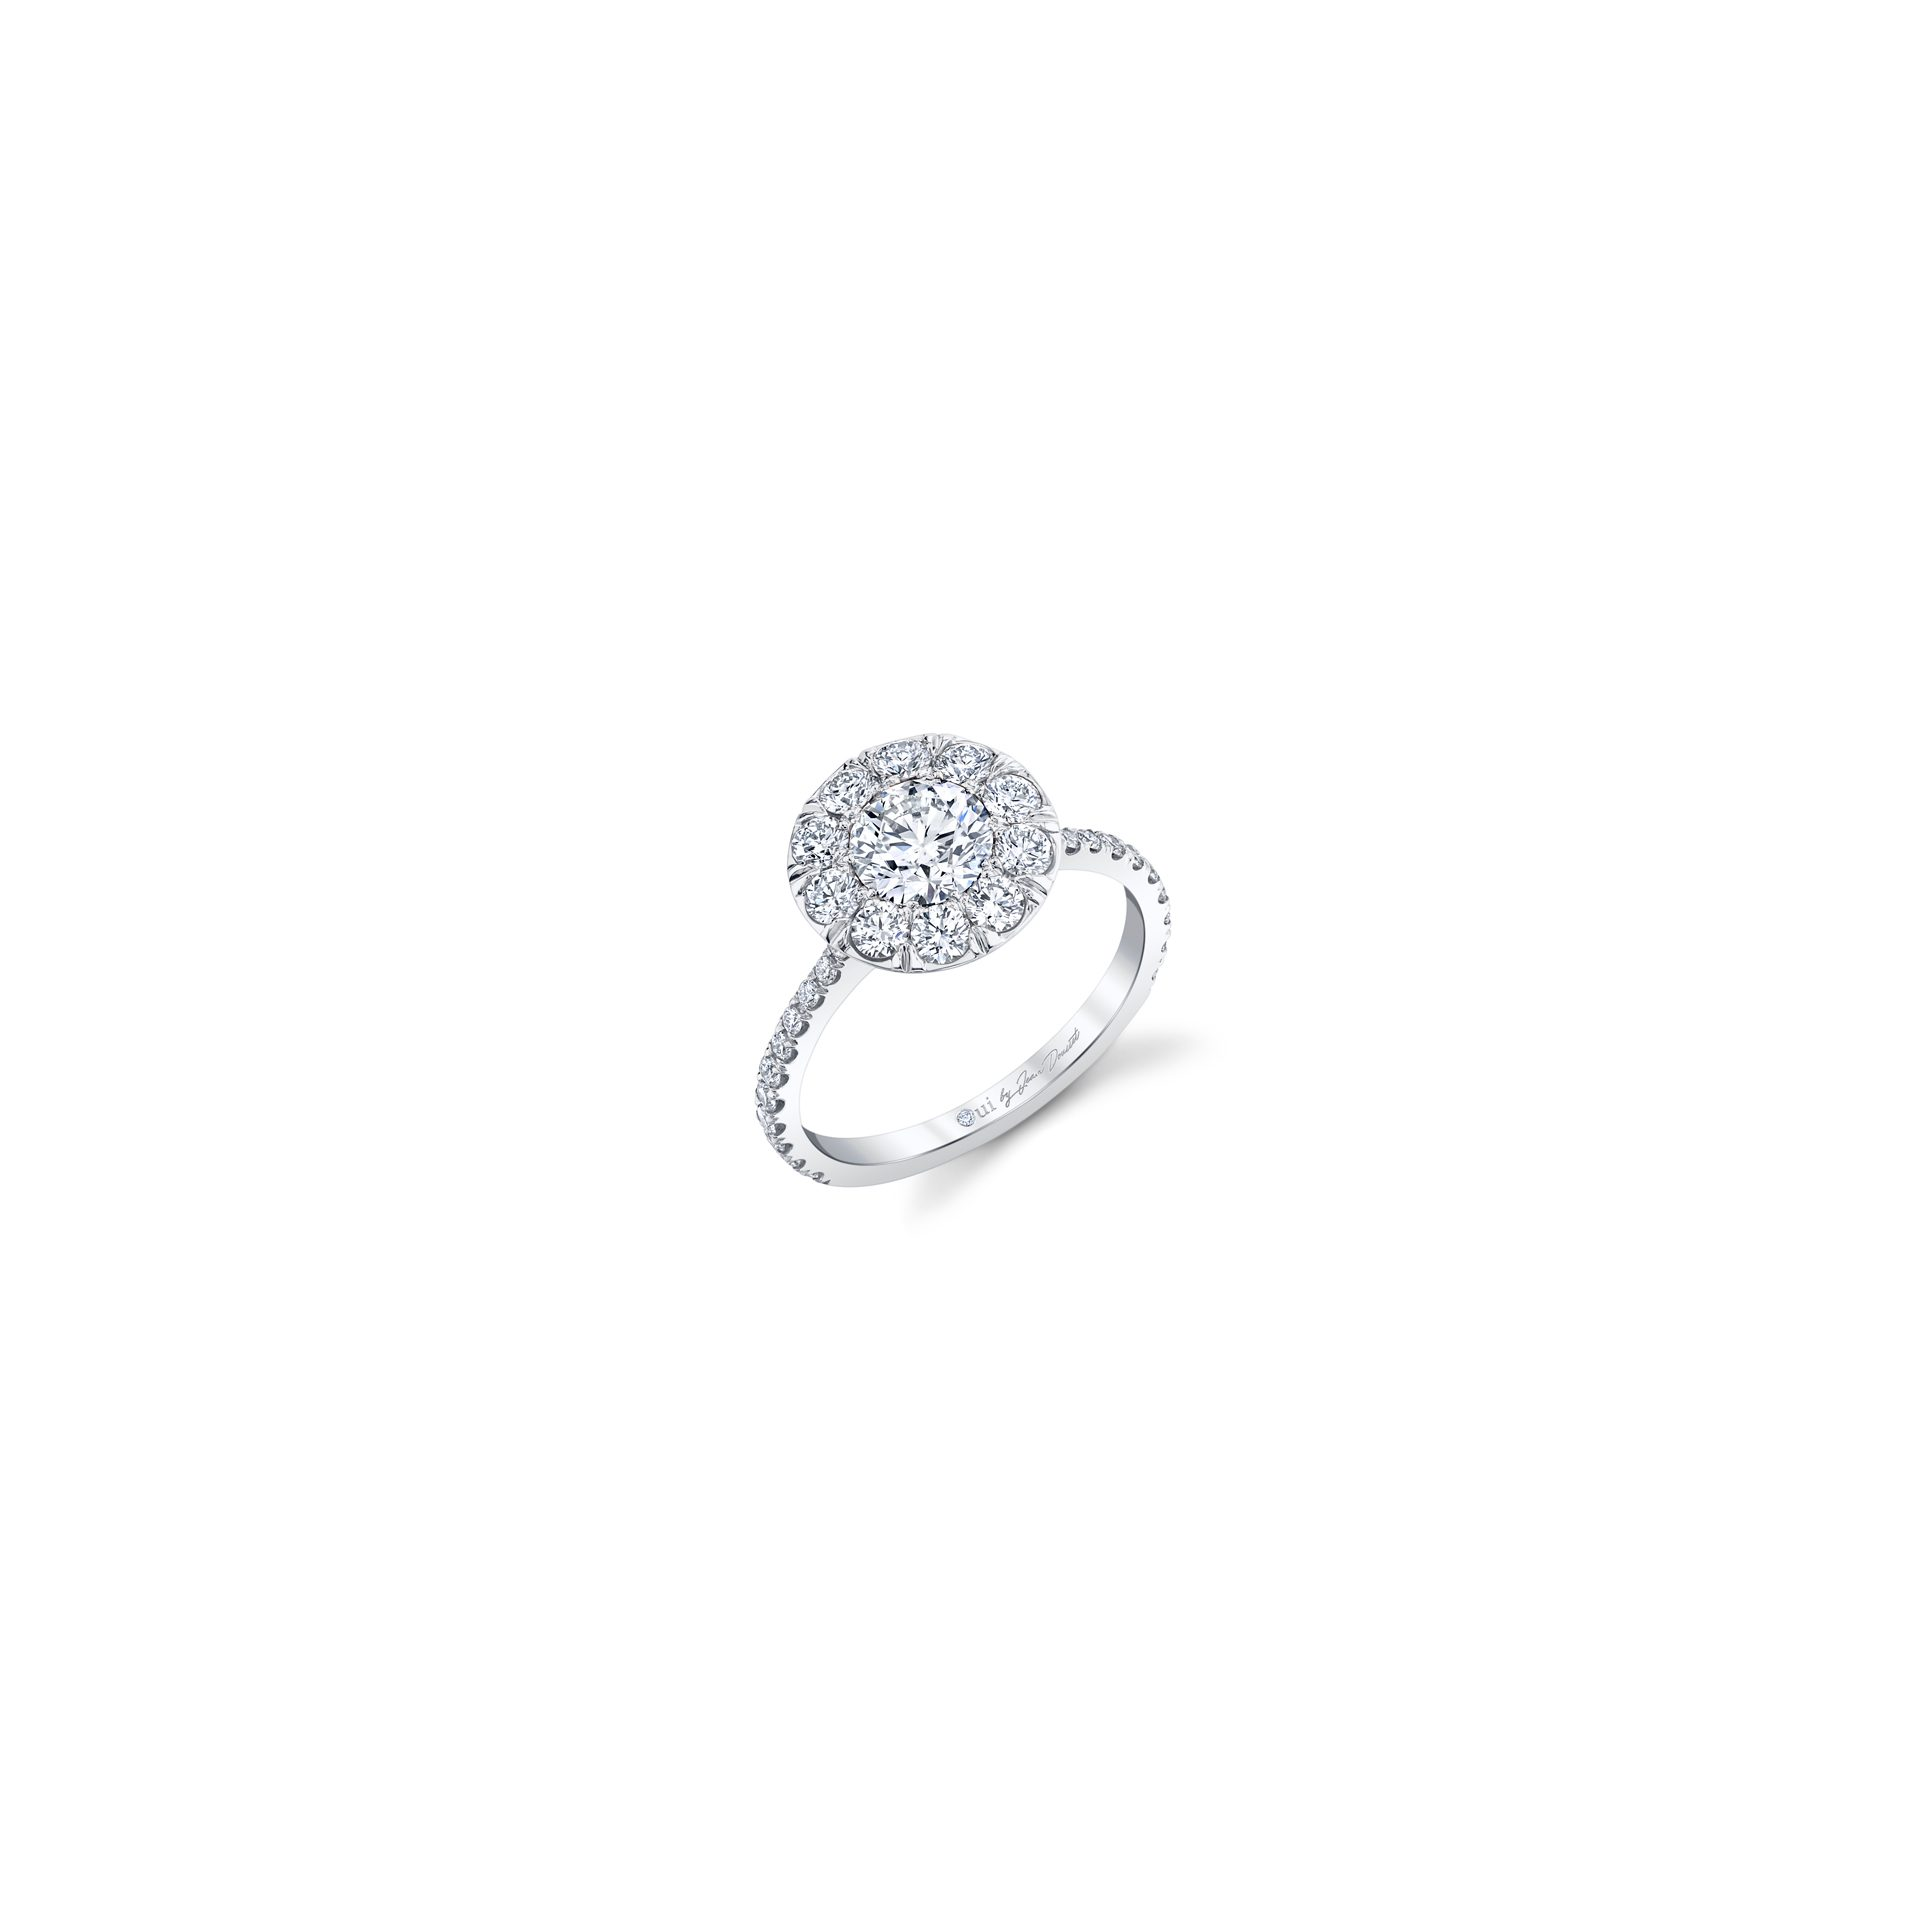 Eloise Round Brilliant Seamless Solitaire™ Engagement Ring with diamond pavé in 18k White Gold Front View by Oui by Jean Dousset